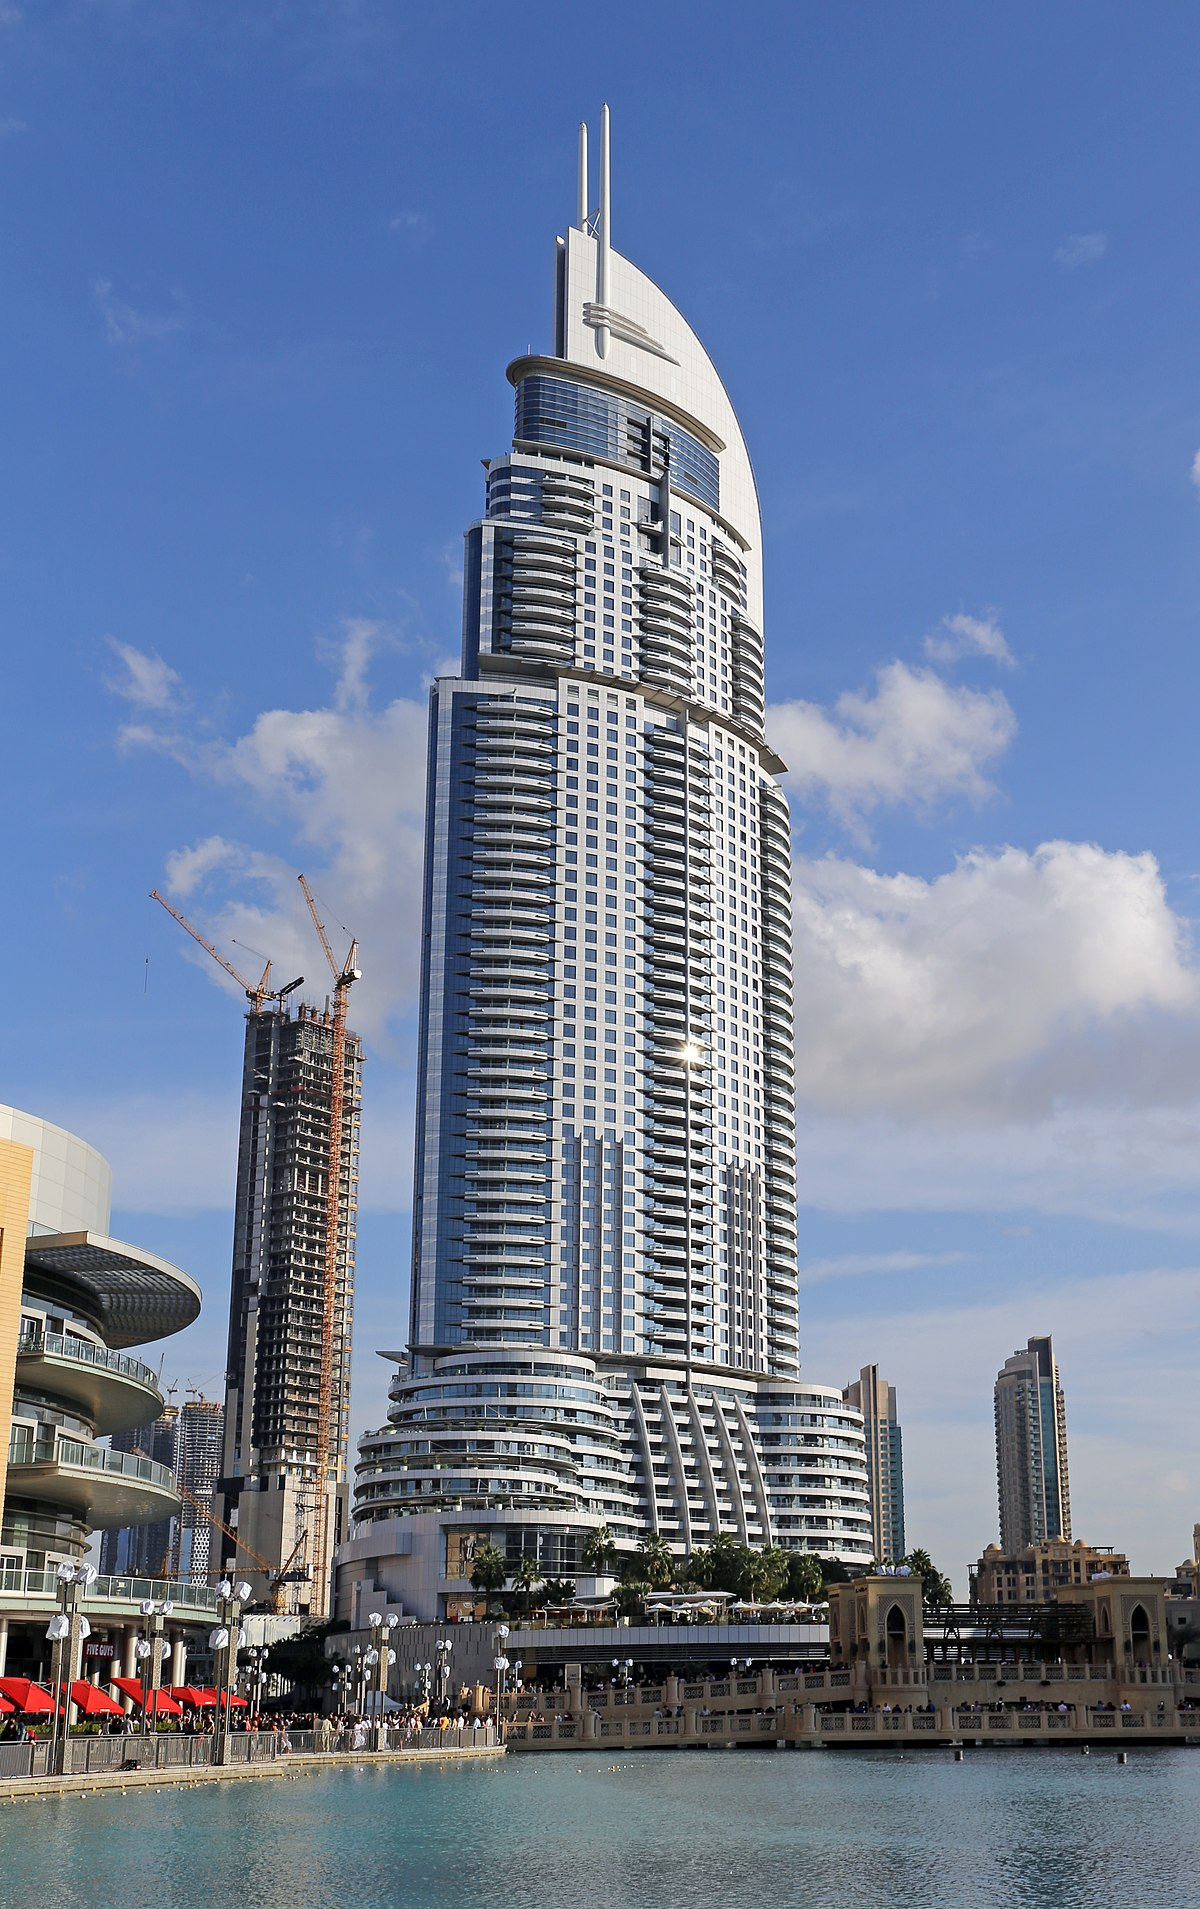 The address downtown dubai wikipedia for List of hotels in dubai with contact details